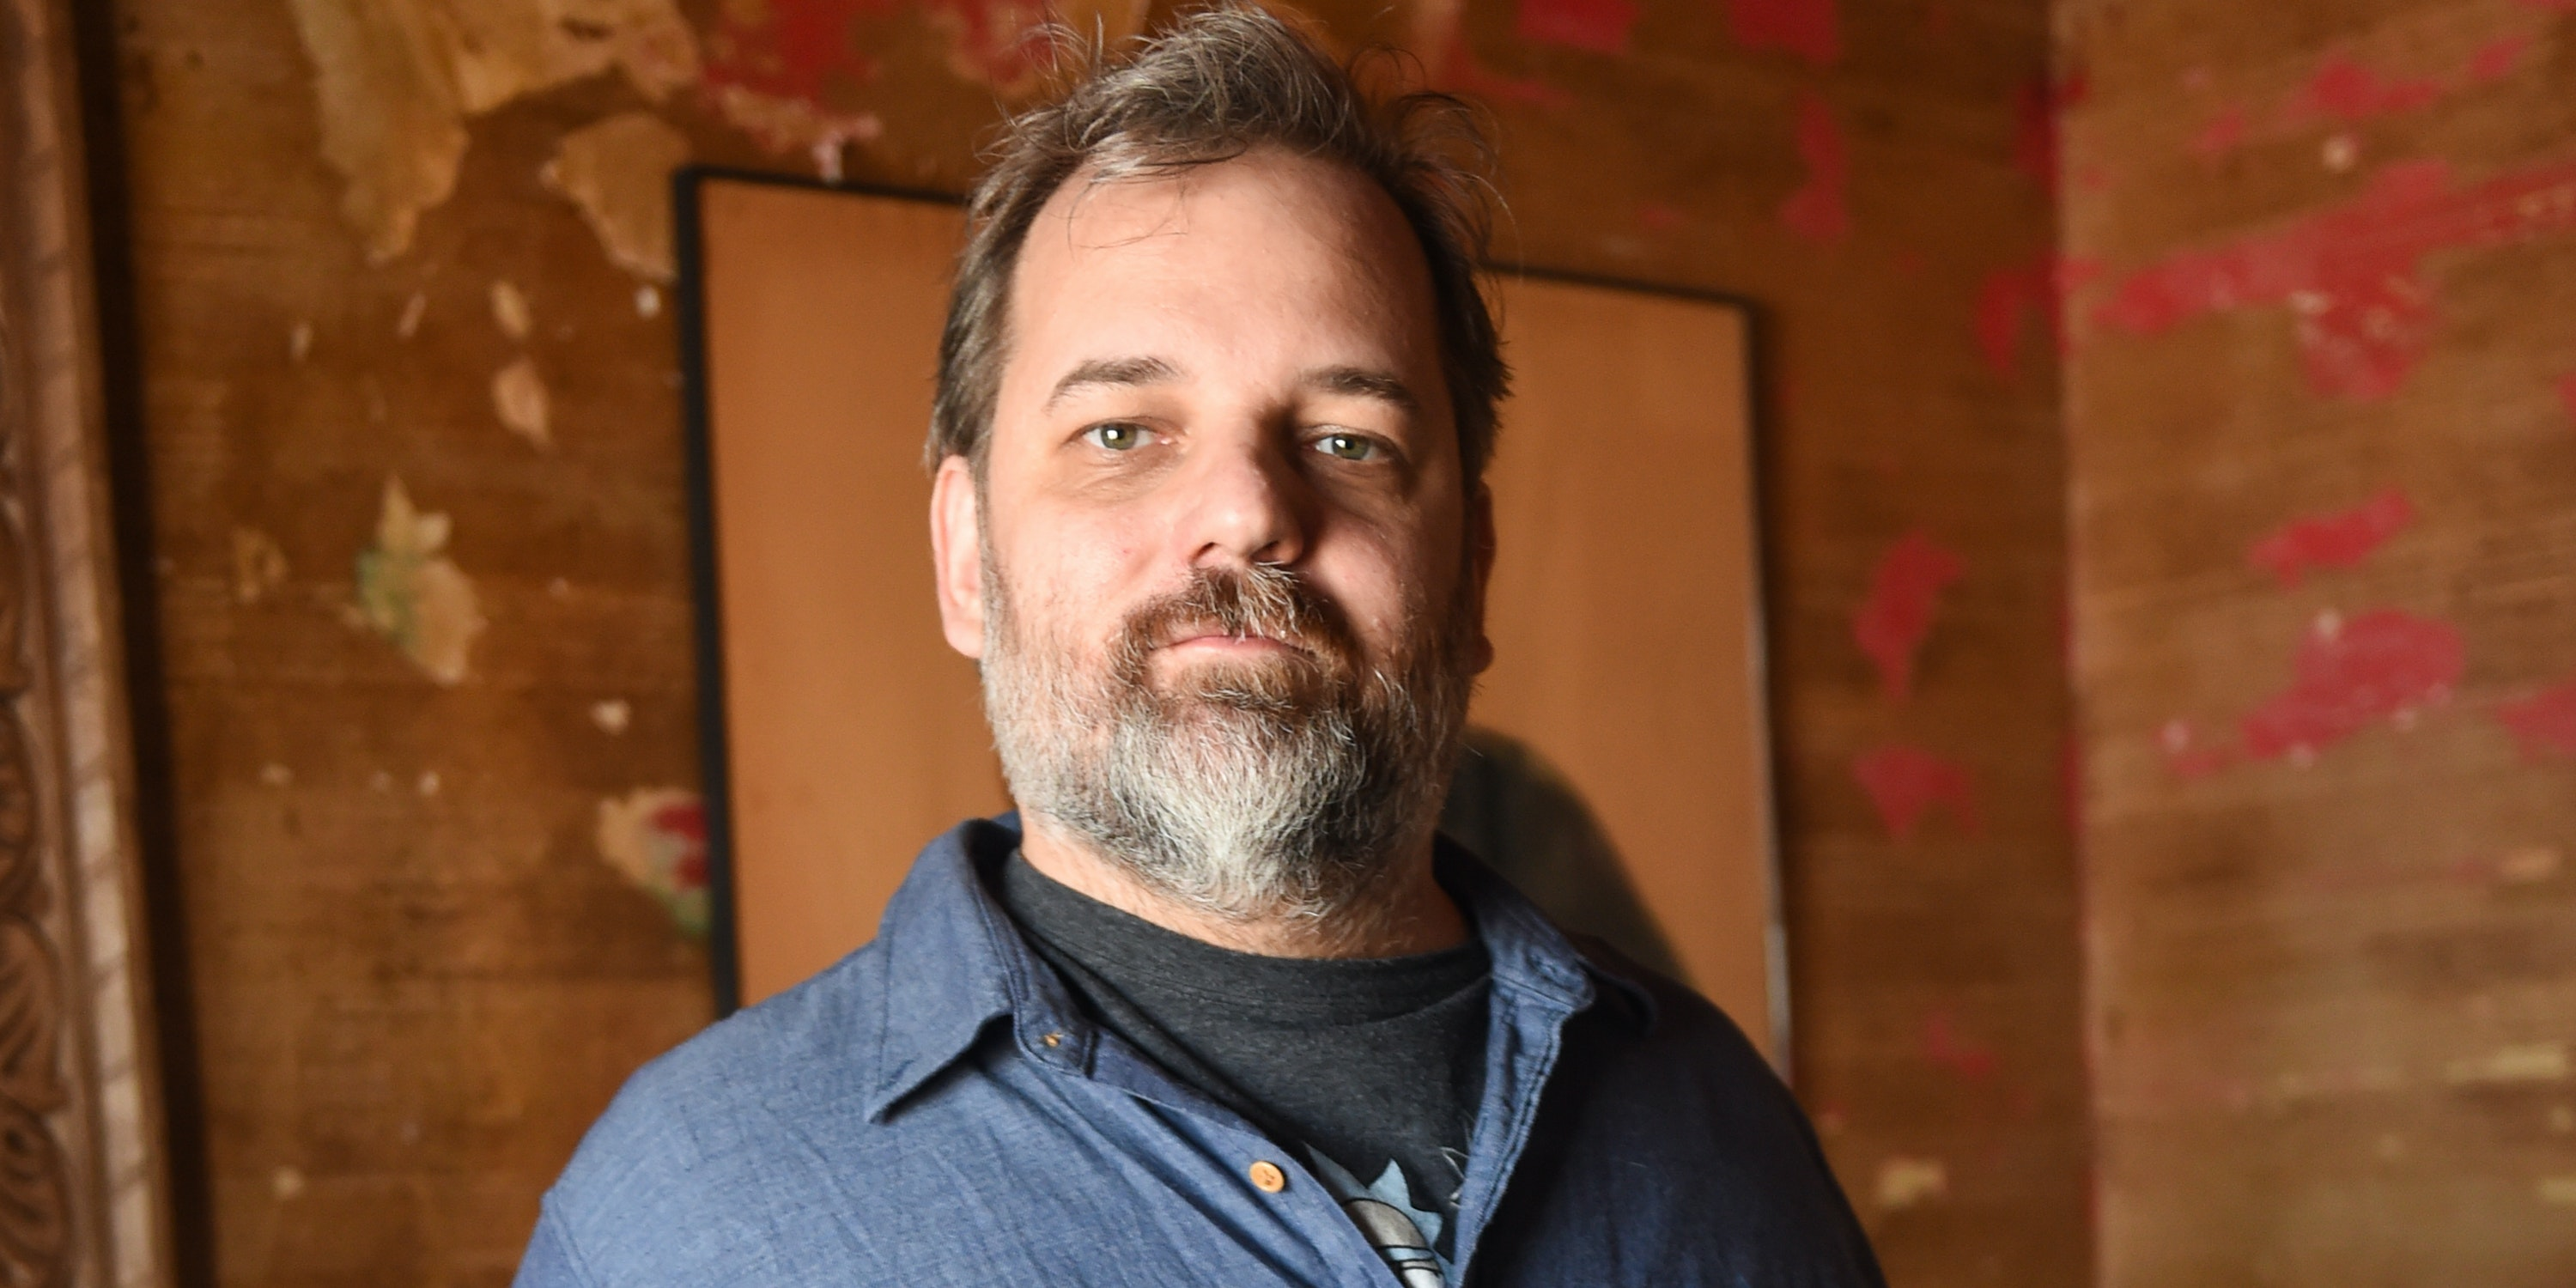 LOS ANGELES, CA - JULY 12:  Writer/ actor Dan Harmon attends the Seeso original screening of 'HarmonQuest' at The Virgil on July 12, 2016 in Los Angeles, California.  (Photo by Emma McIntyre/Getty Images for Seeso)